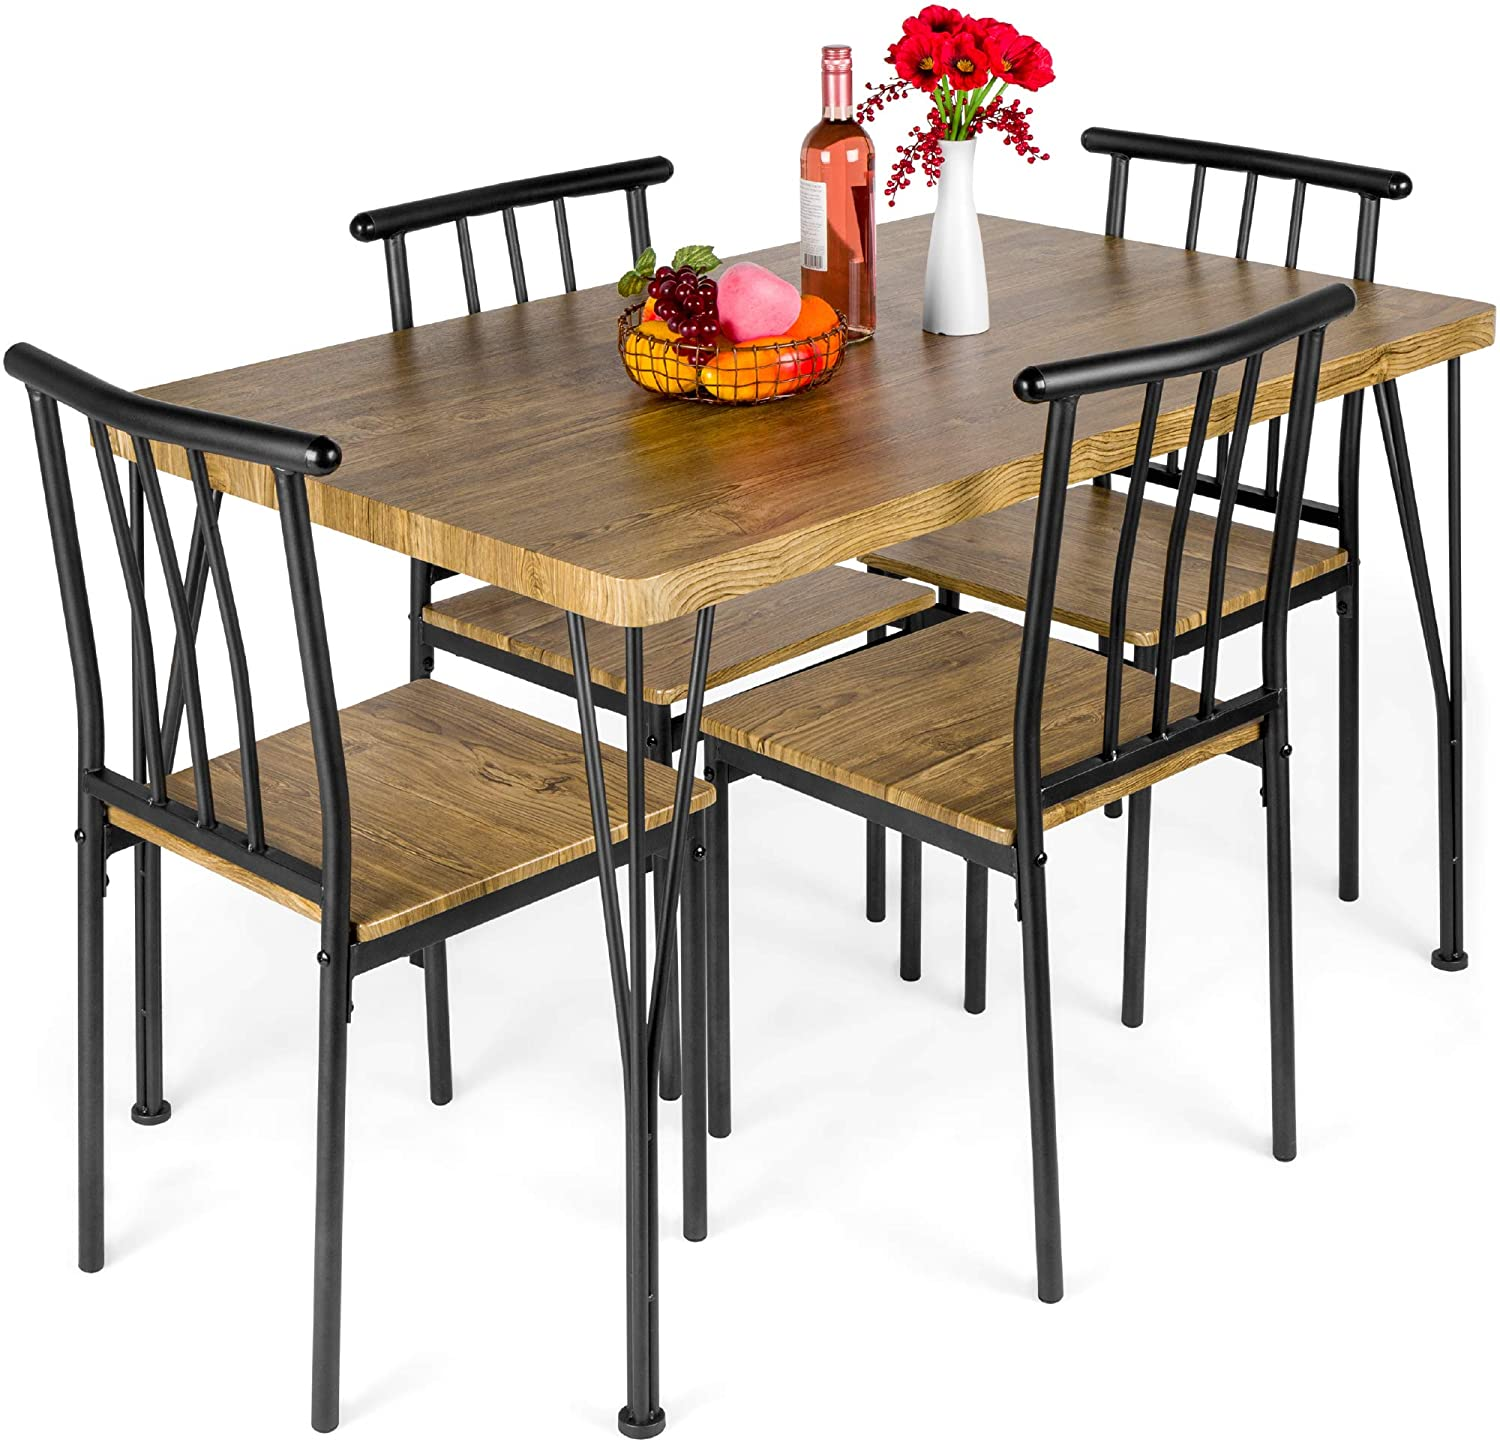 Amazon Com Best Choice Products 5 Piece Metal And Wood Indoor Modern Rectangular Dining Table Furniture Set For Kitchen Dining Room Dinette Breakfast Nook W 4 Chairs Brown Table Chair Sets